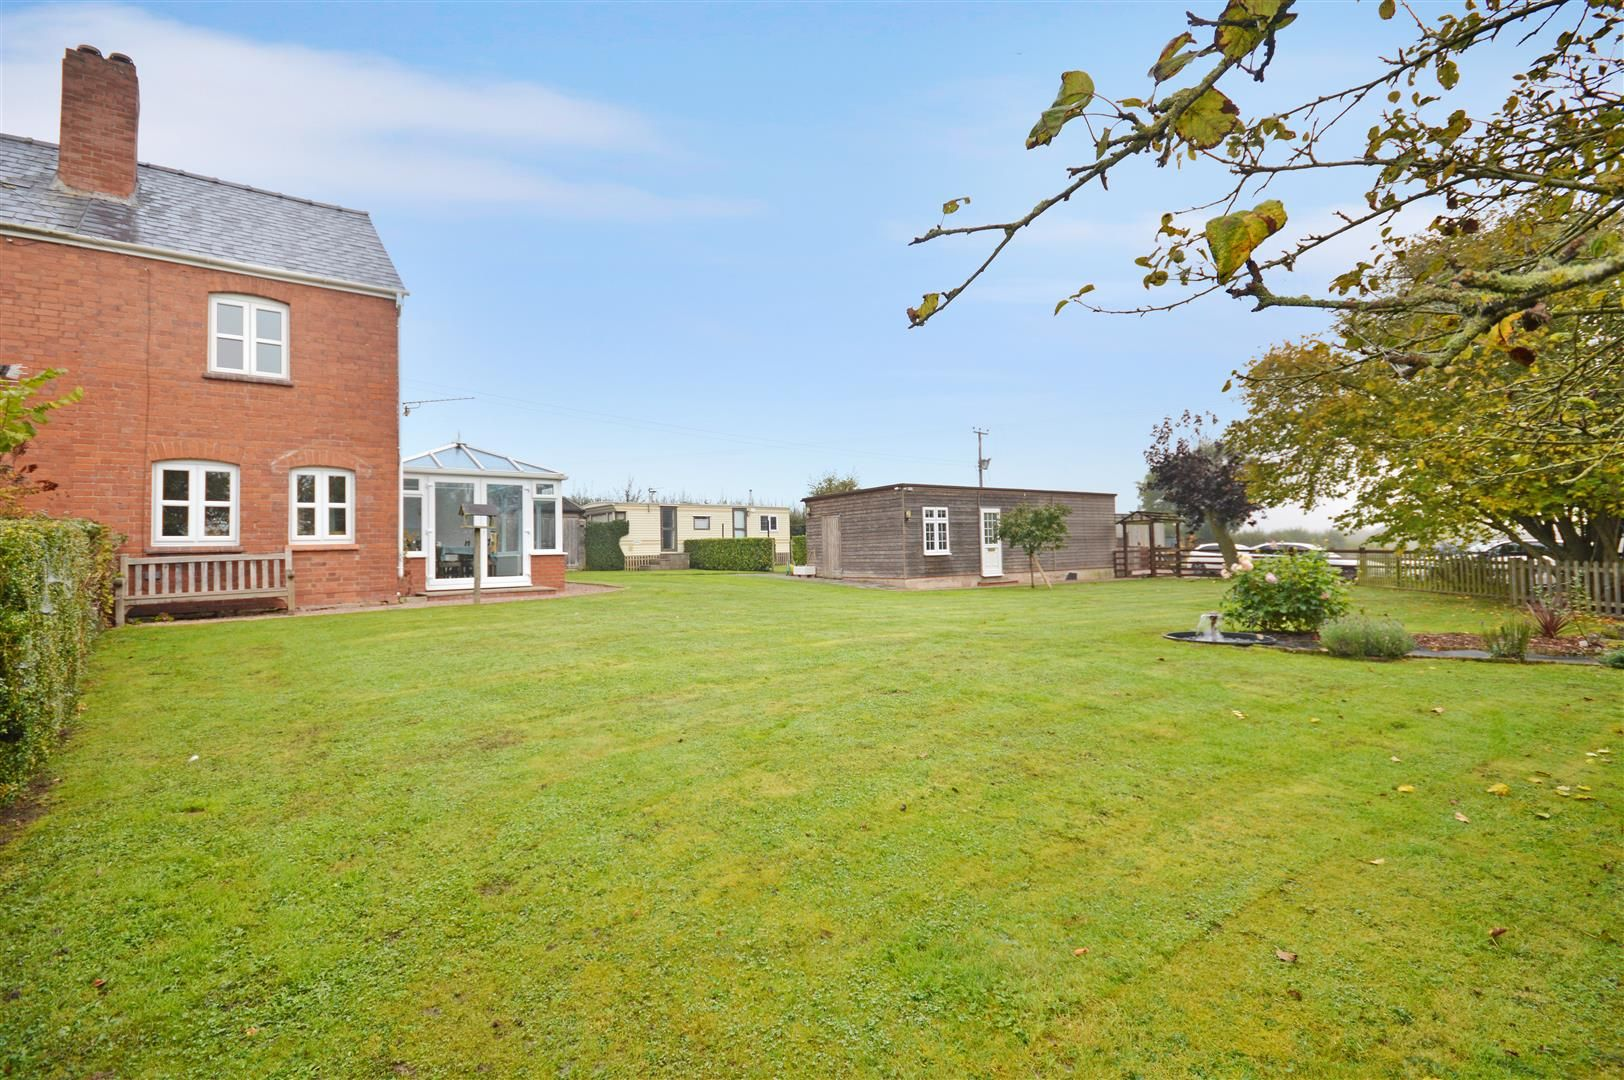 3 bed semi-detached for sale in Sutton St. Nicholas  - Property Image 7